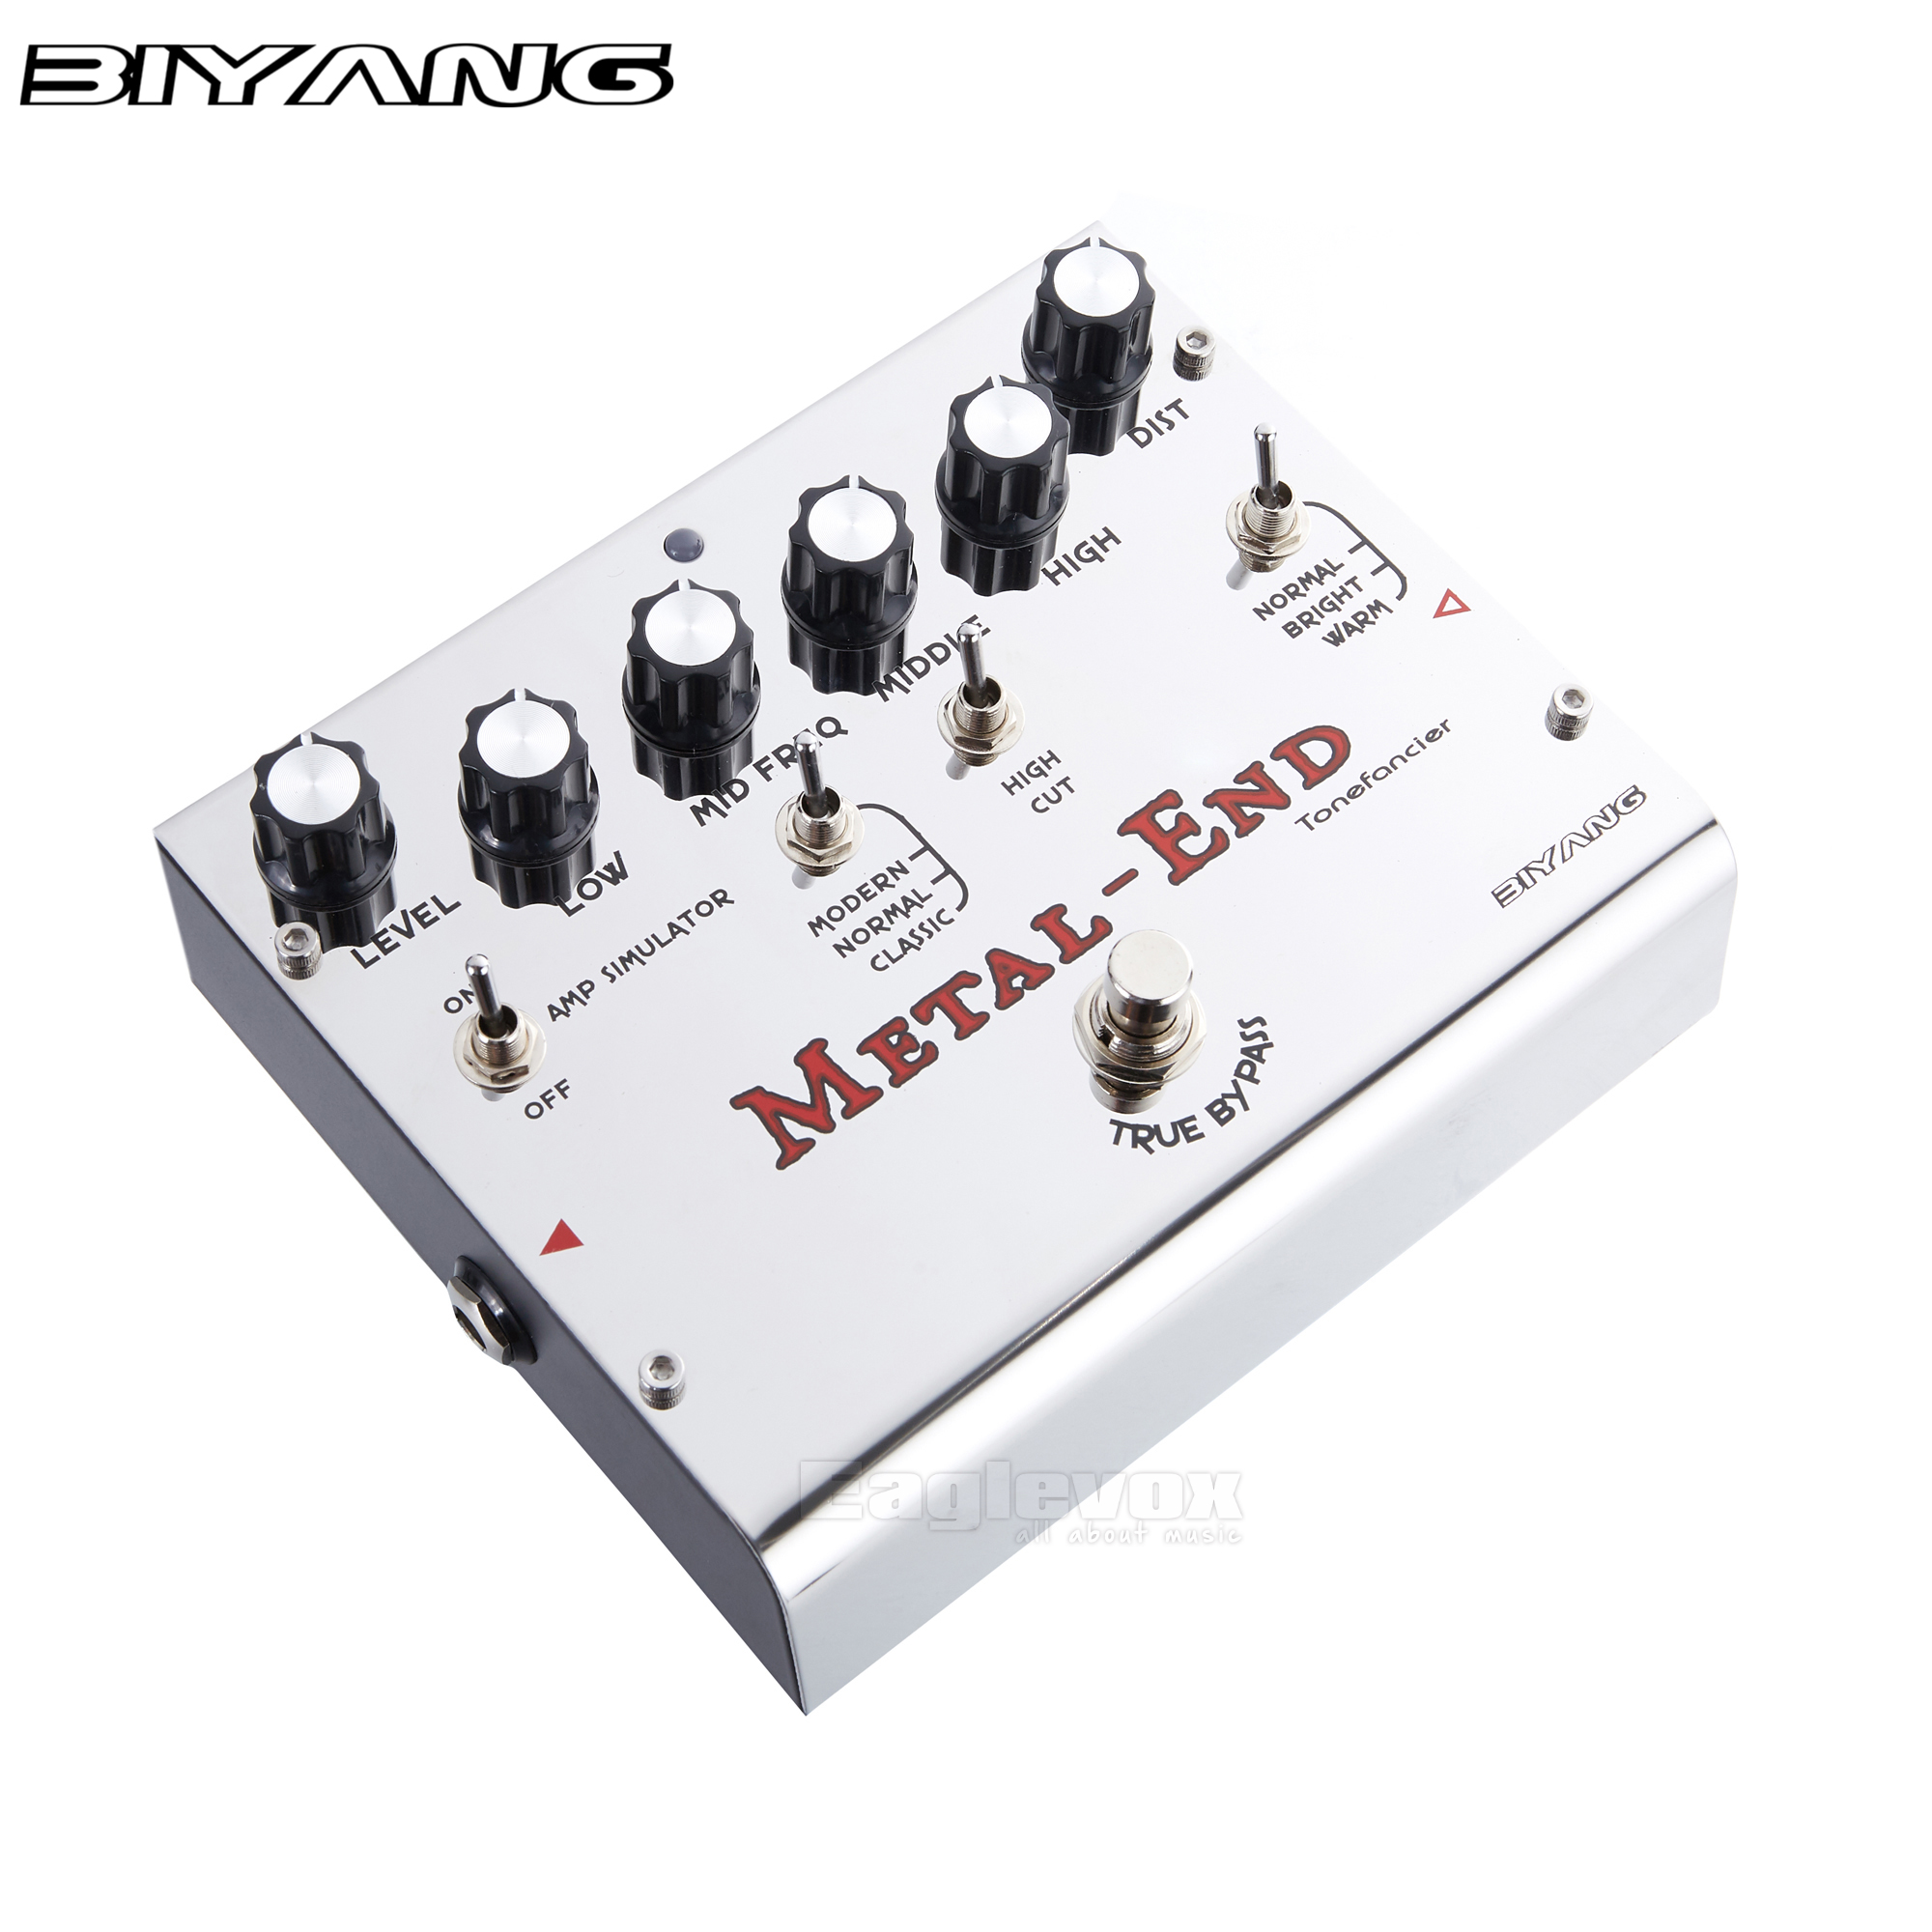 Biyang Metal End Guitar Effect Pedal Effects Stompbox for Electric Guitar Give More Choice for Different Types of Music eliminate the effect of mai using different techniques